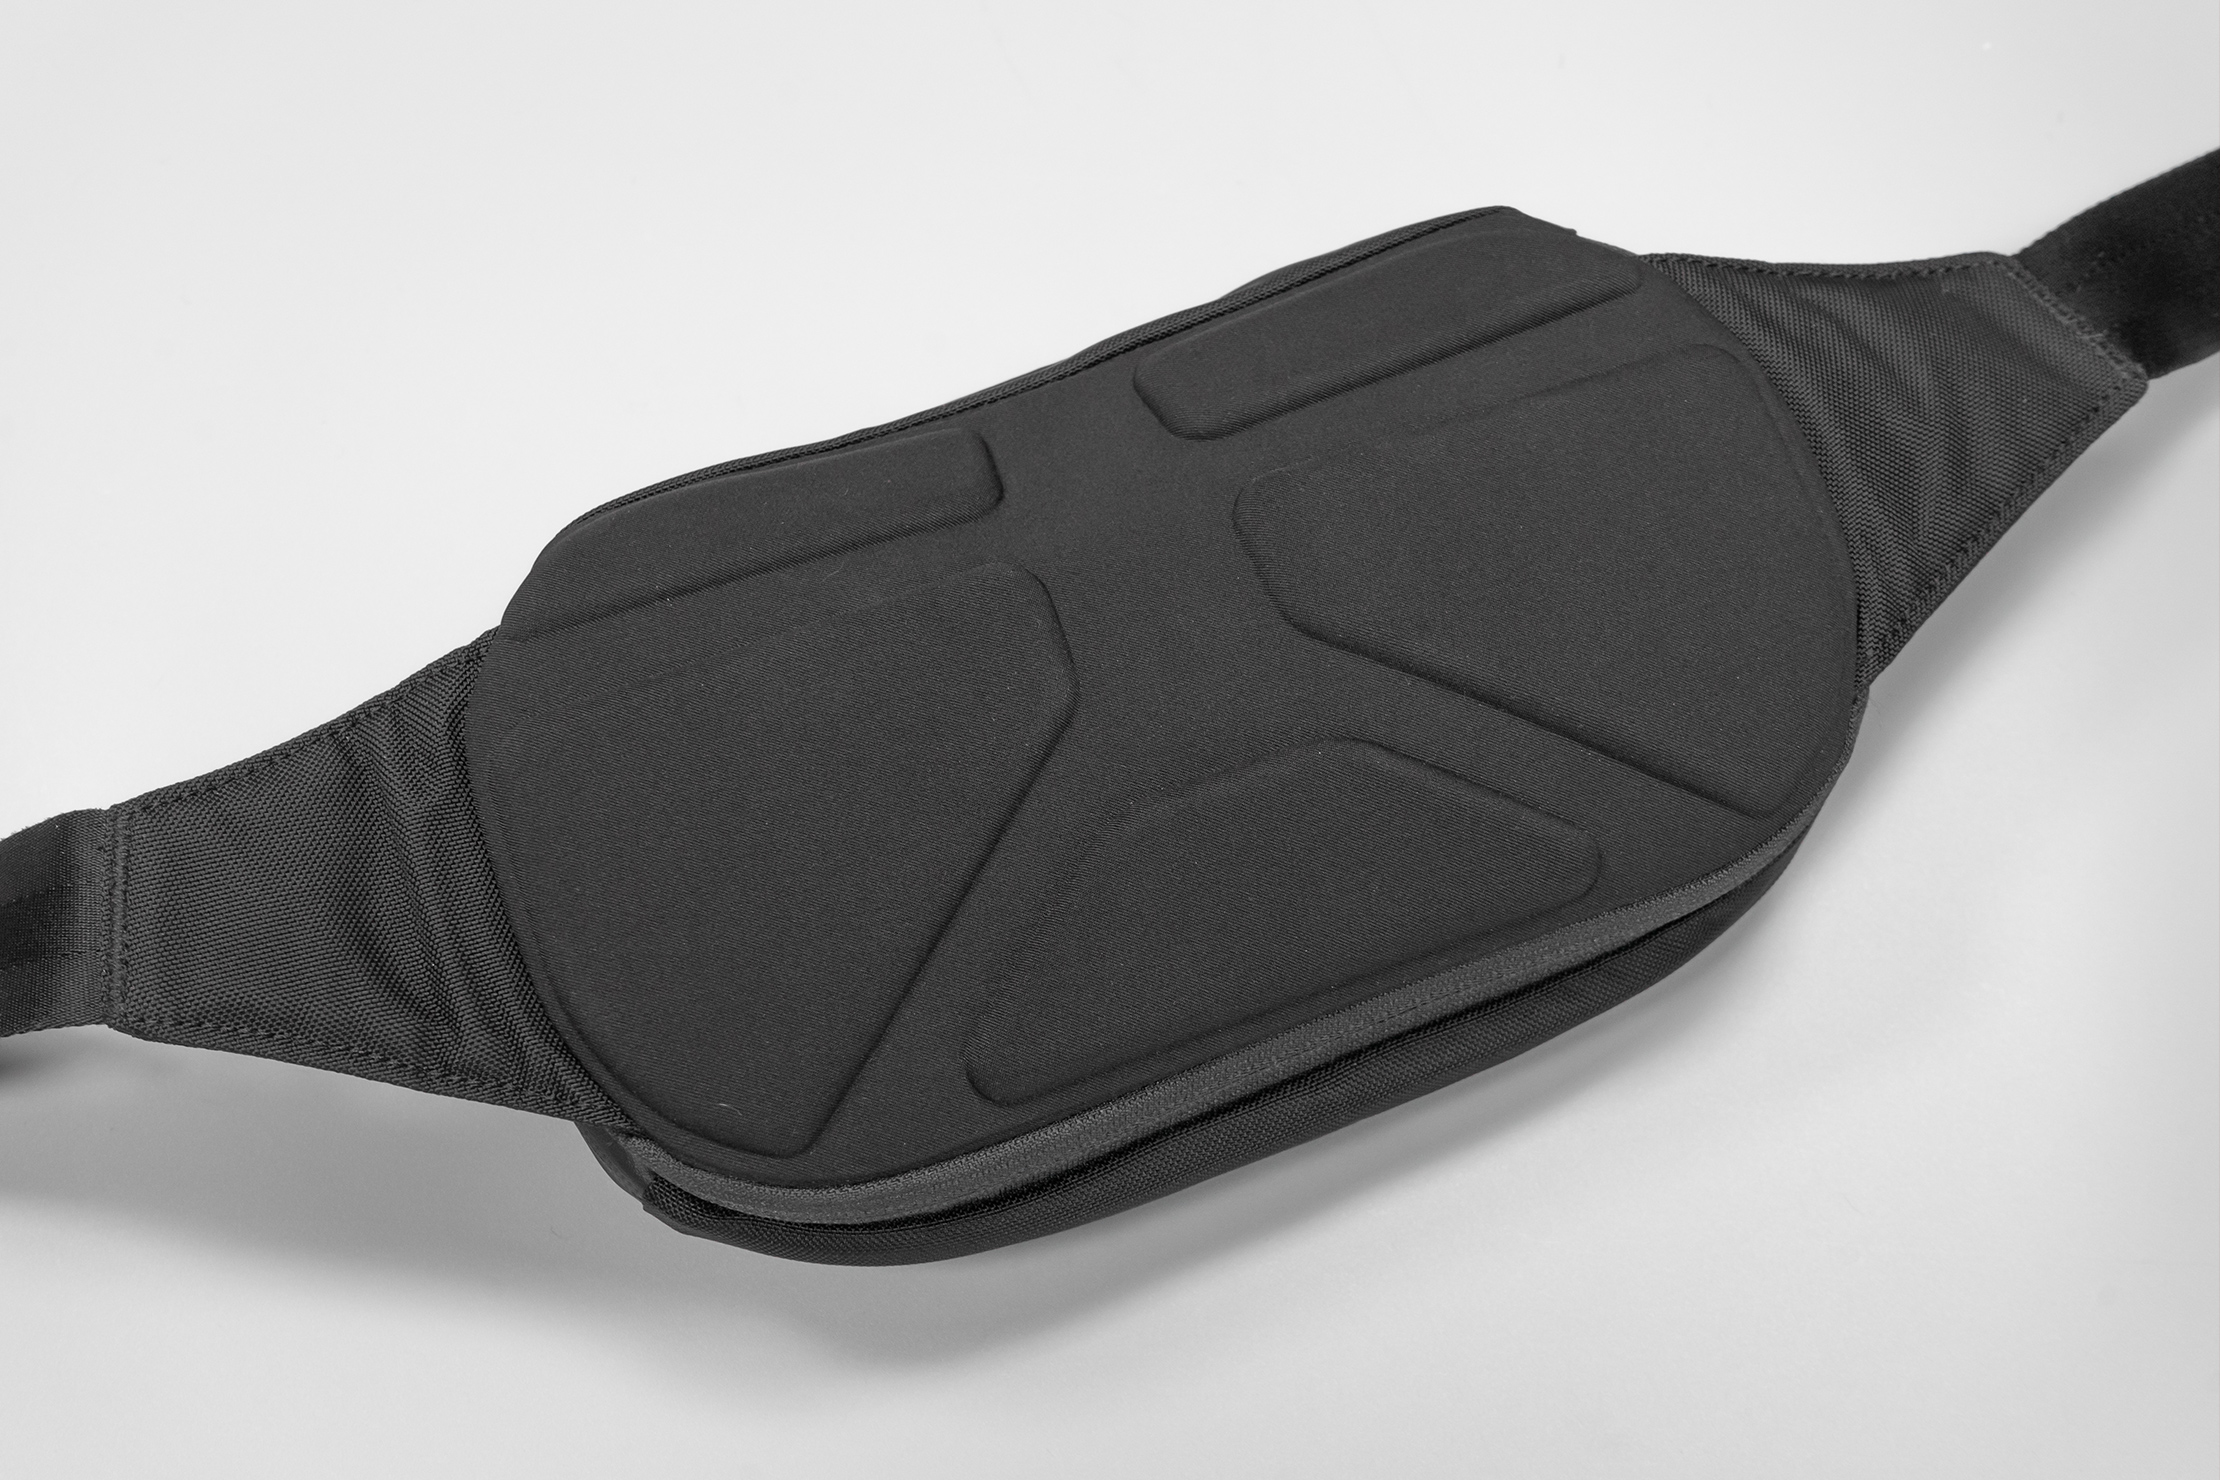 NOMATIC Navigator Sling 1L | The back panel adds to the structure of the sling